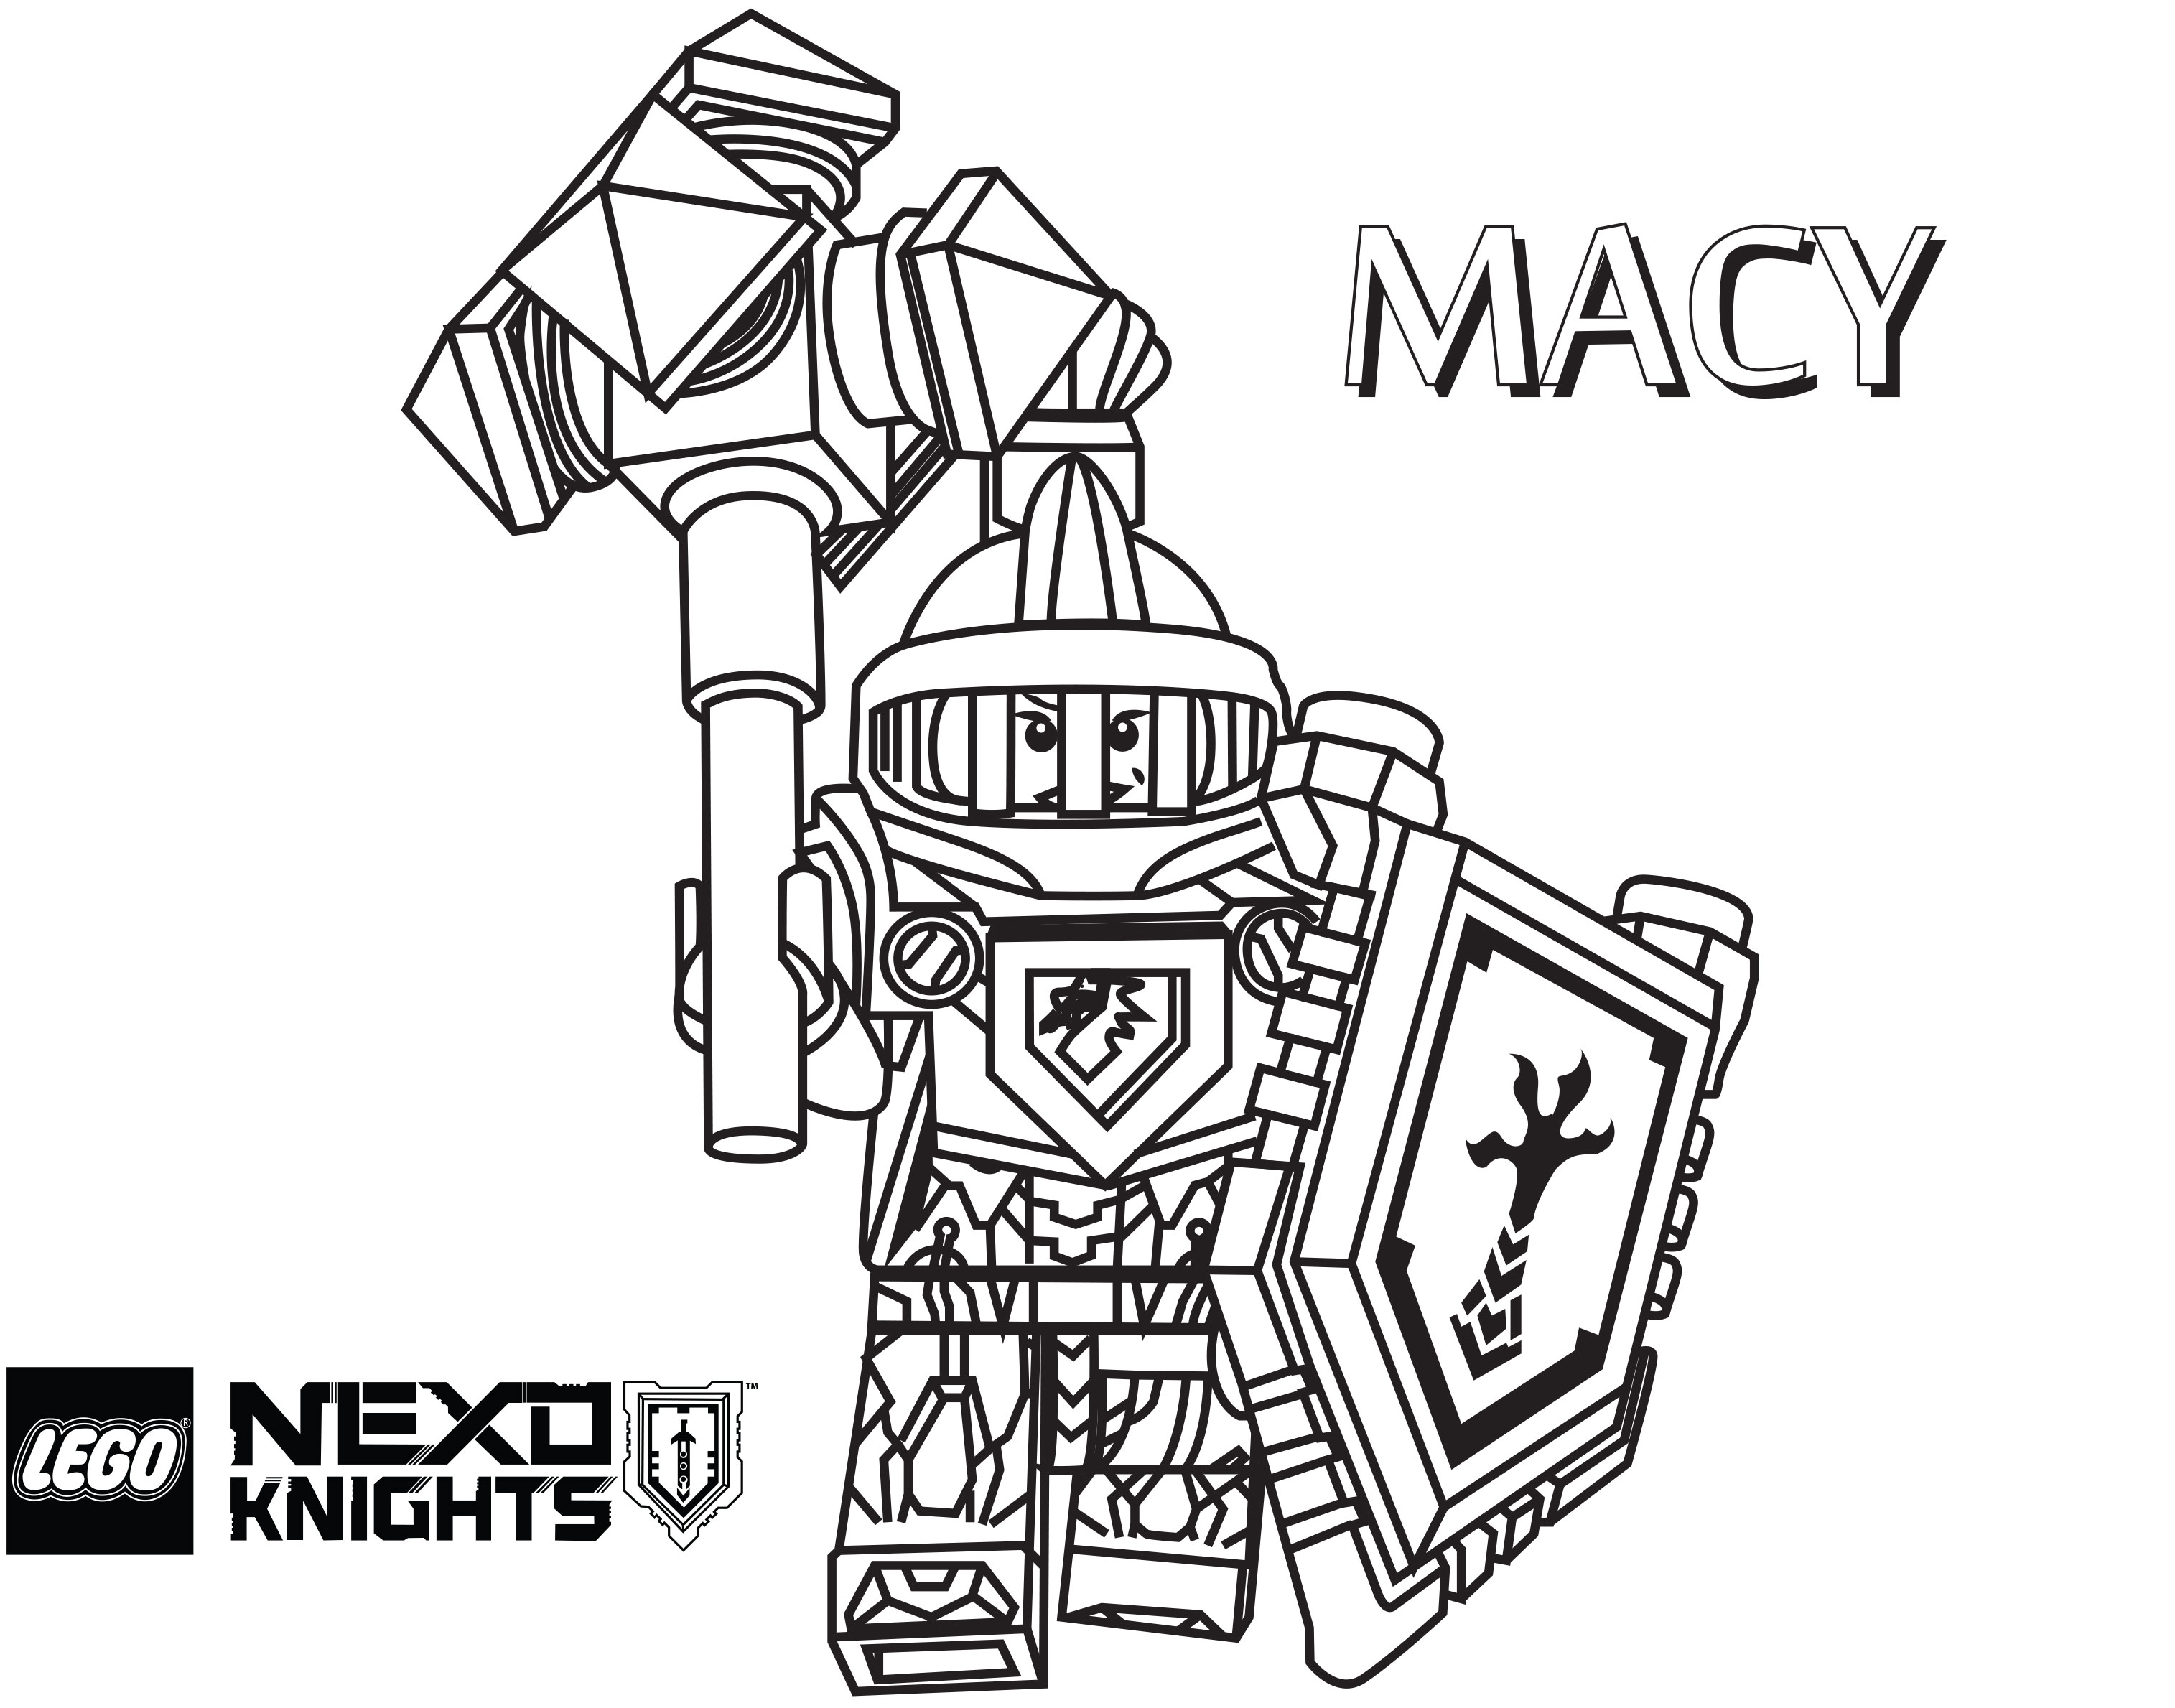 Ausmalbilder Ninjago Nexo Knights : 27 Lego Ninjago Coloring Pages Selection Free Coloring Pages Part 2